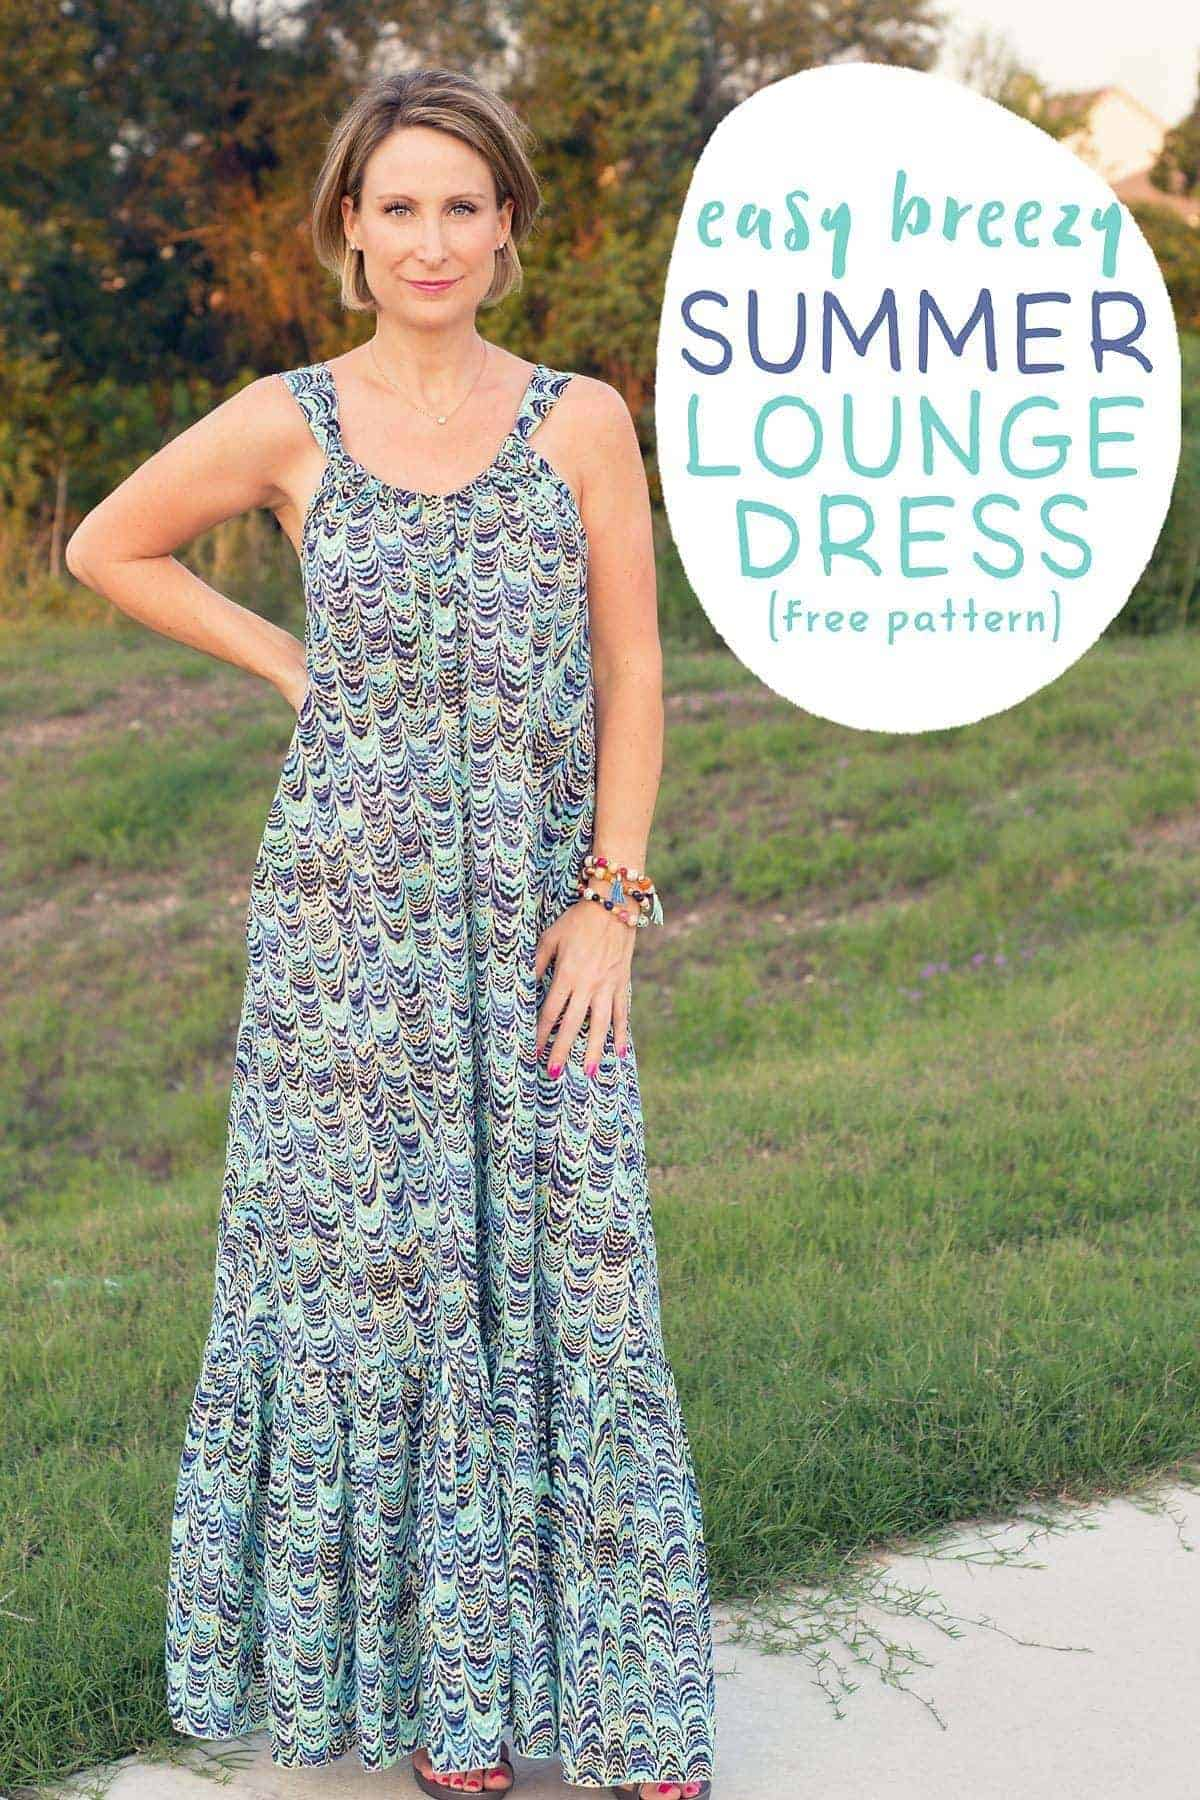 f6d6809a31d19 Easy Breezy Summer Lounge Dress Pattern and Tutorial